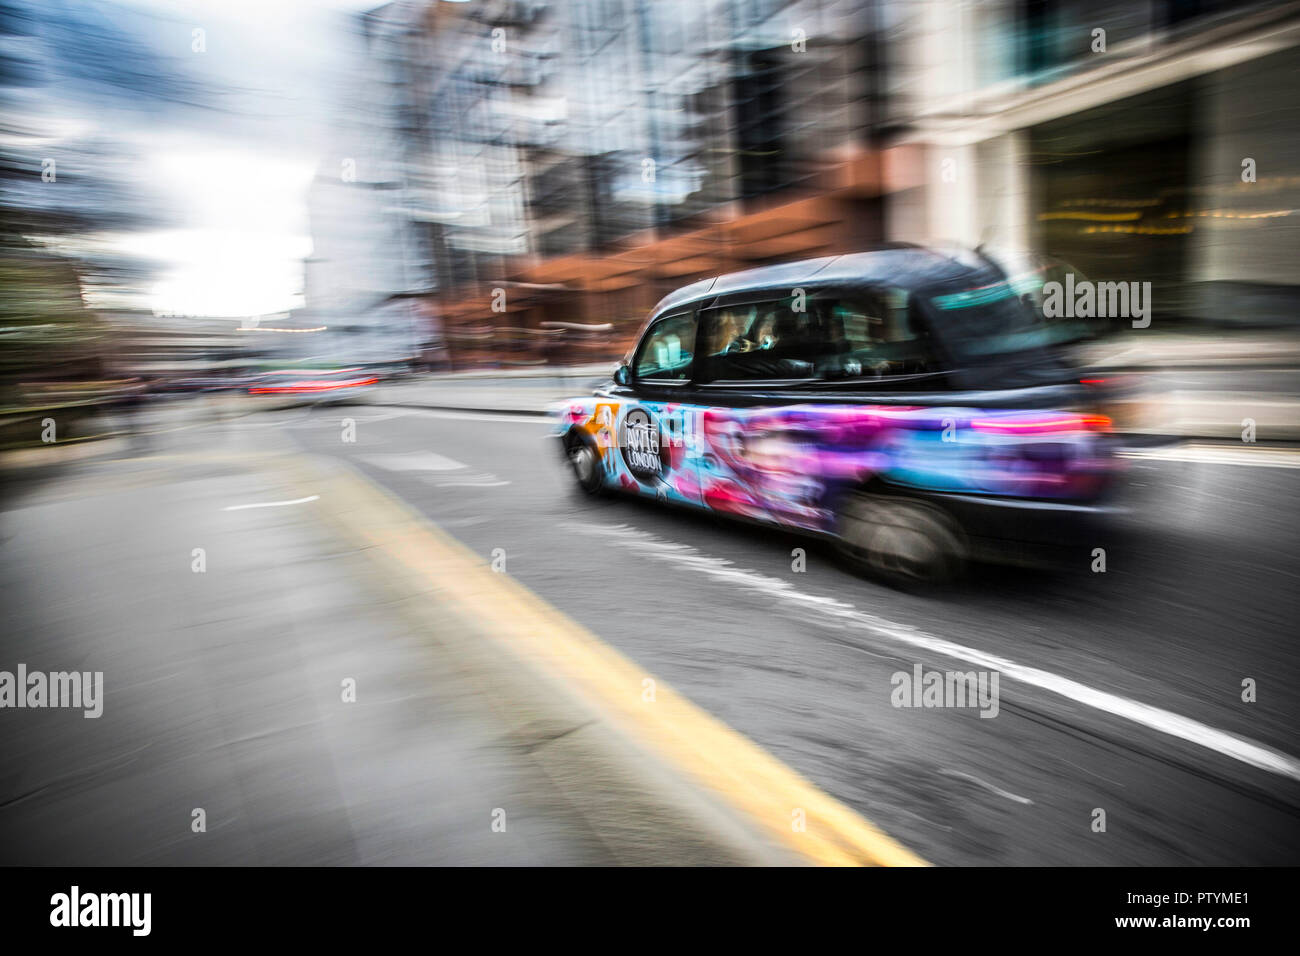 British taxi cab speeding in central London. Deliberately blurred to convey speed. Motion blur effect. - Stock Image